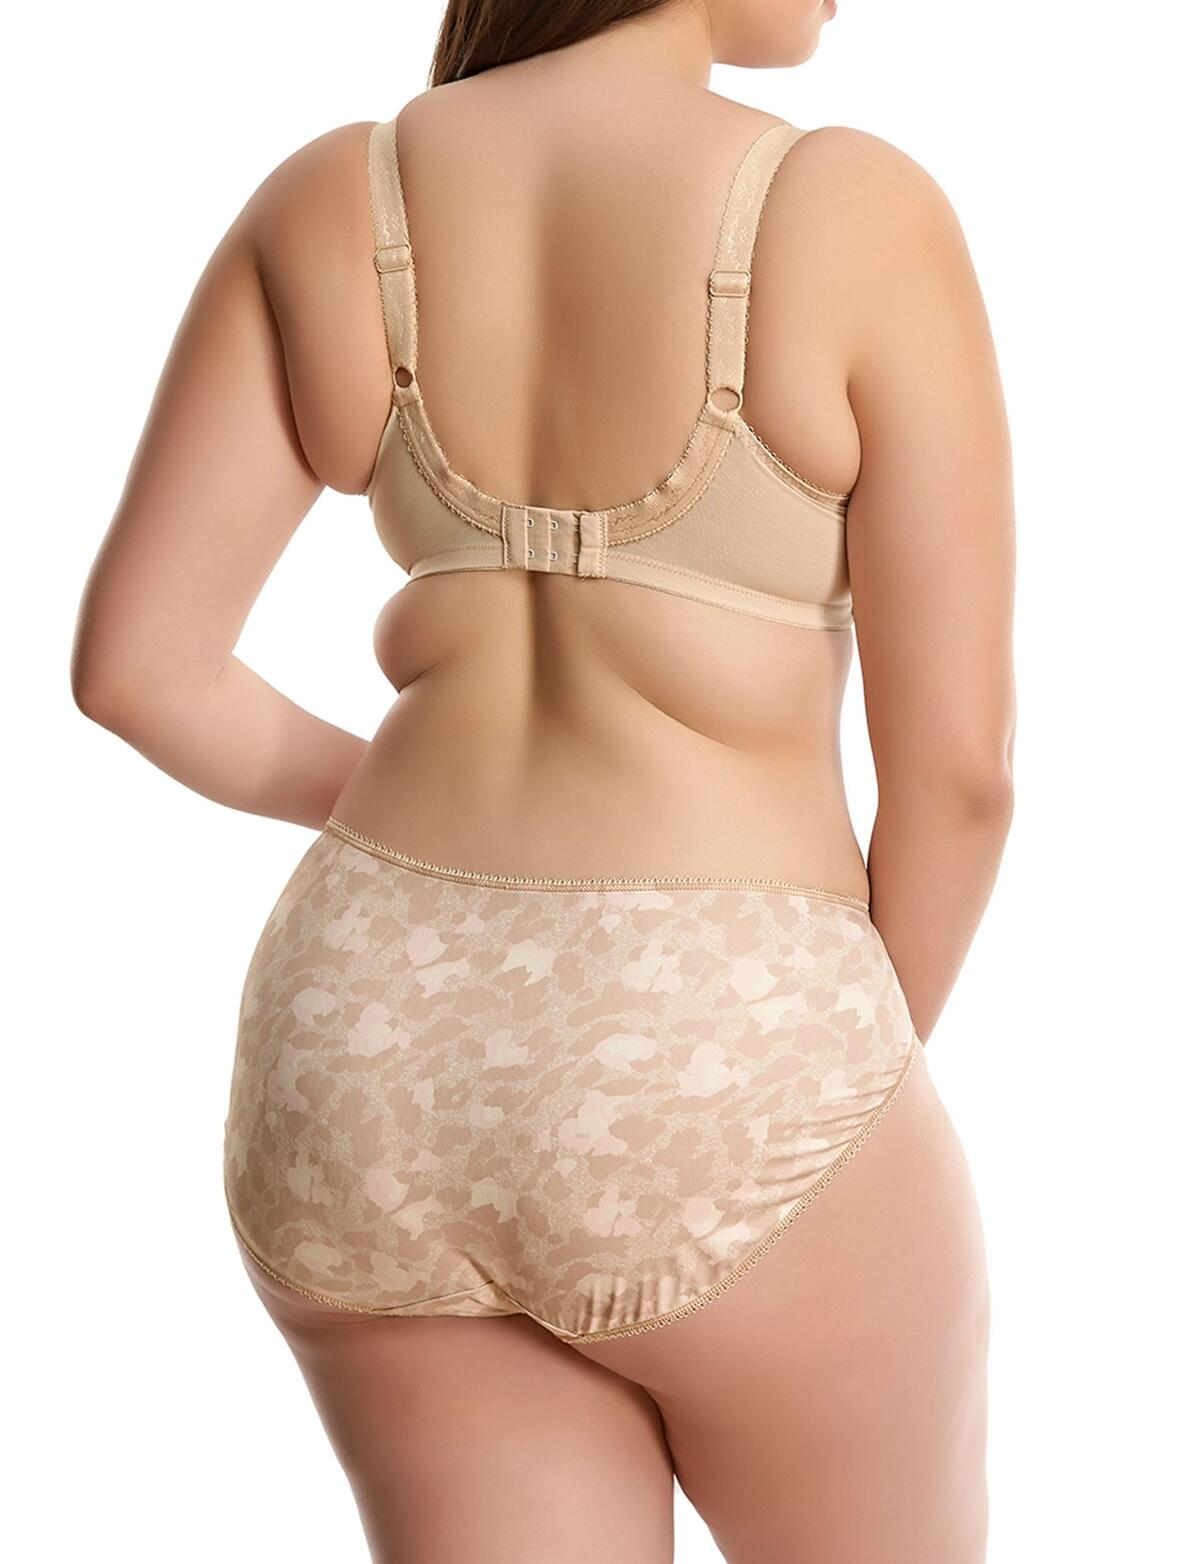 Elomi Morgan: Underwired Banded Bra - Toasted Almond